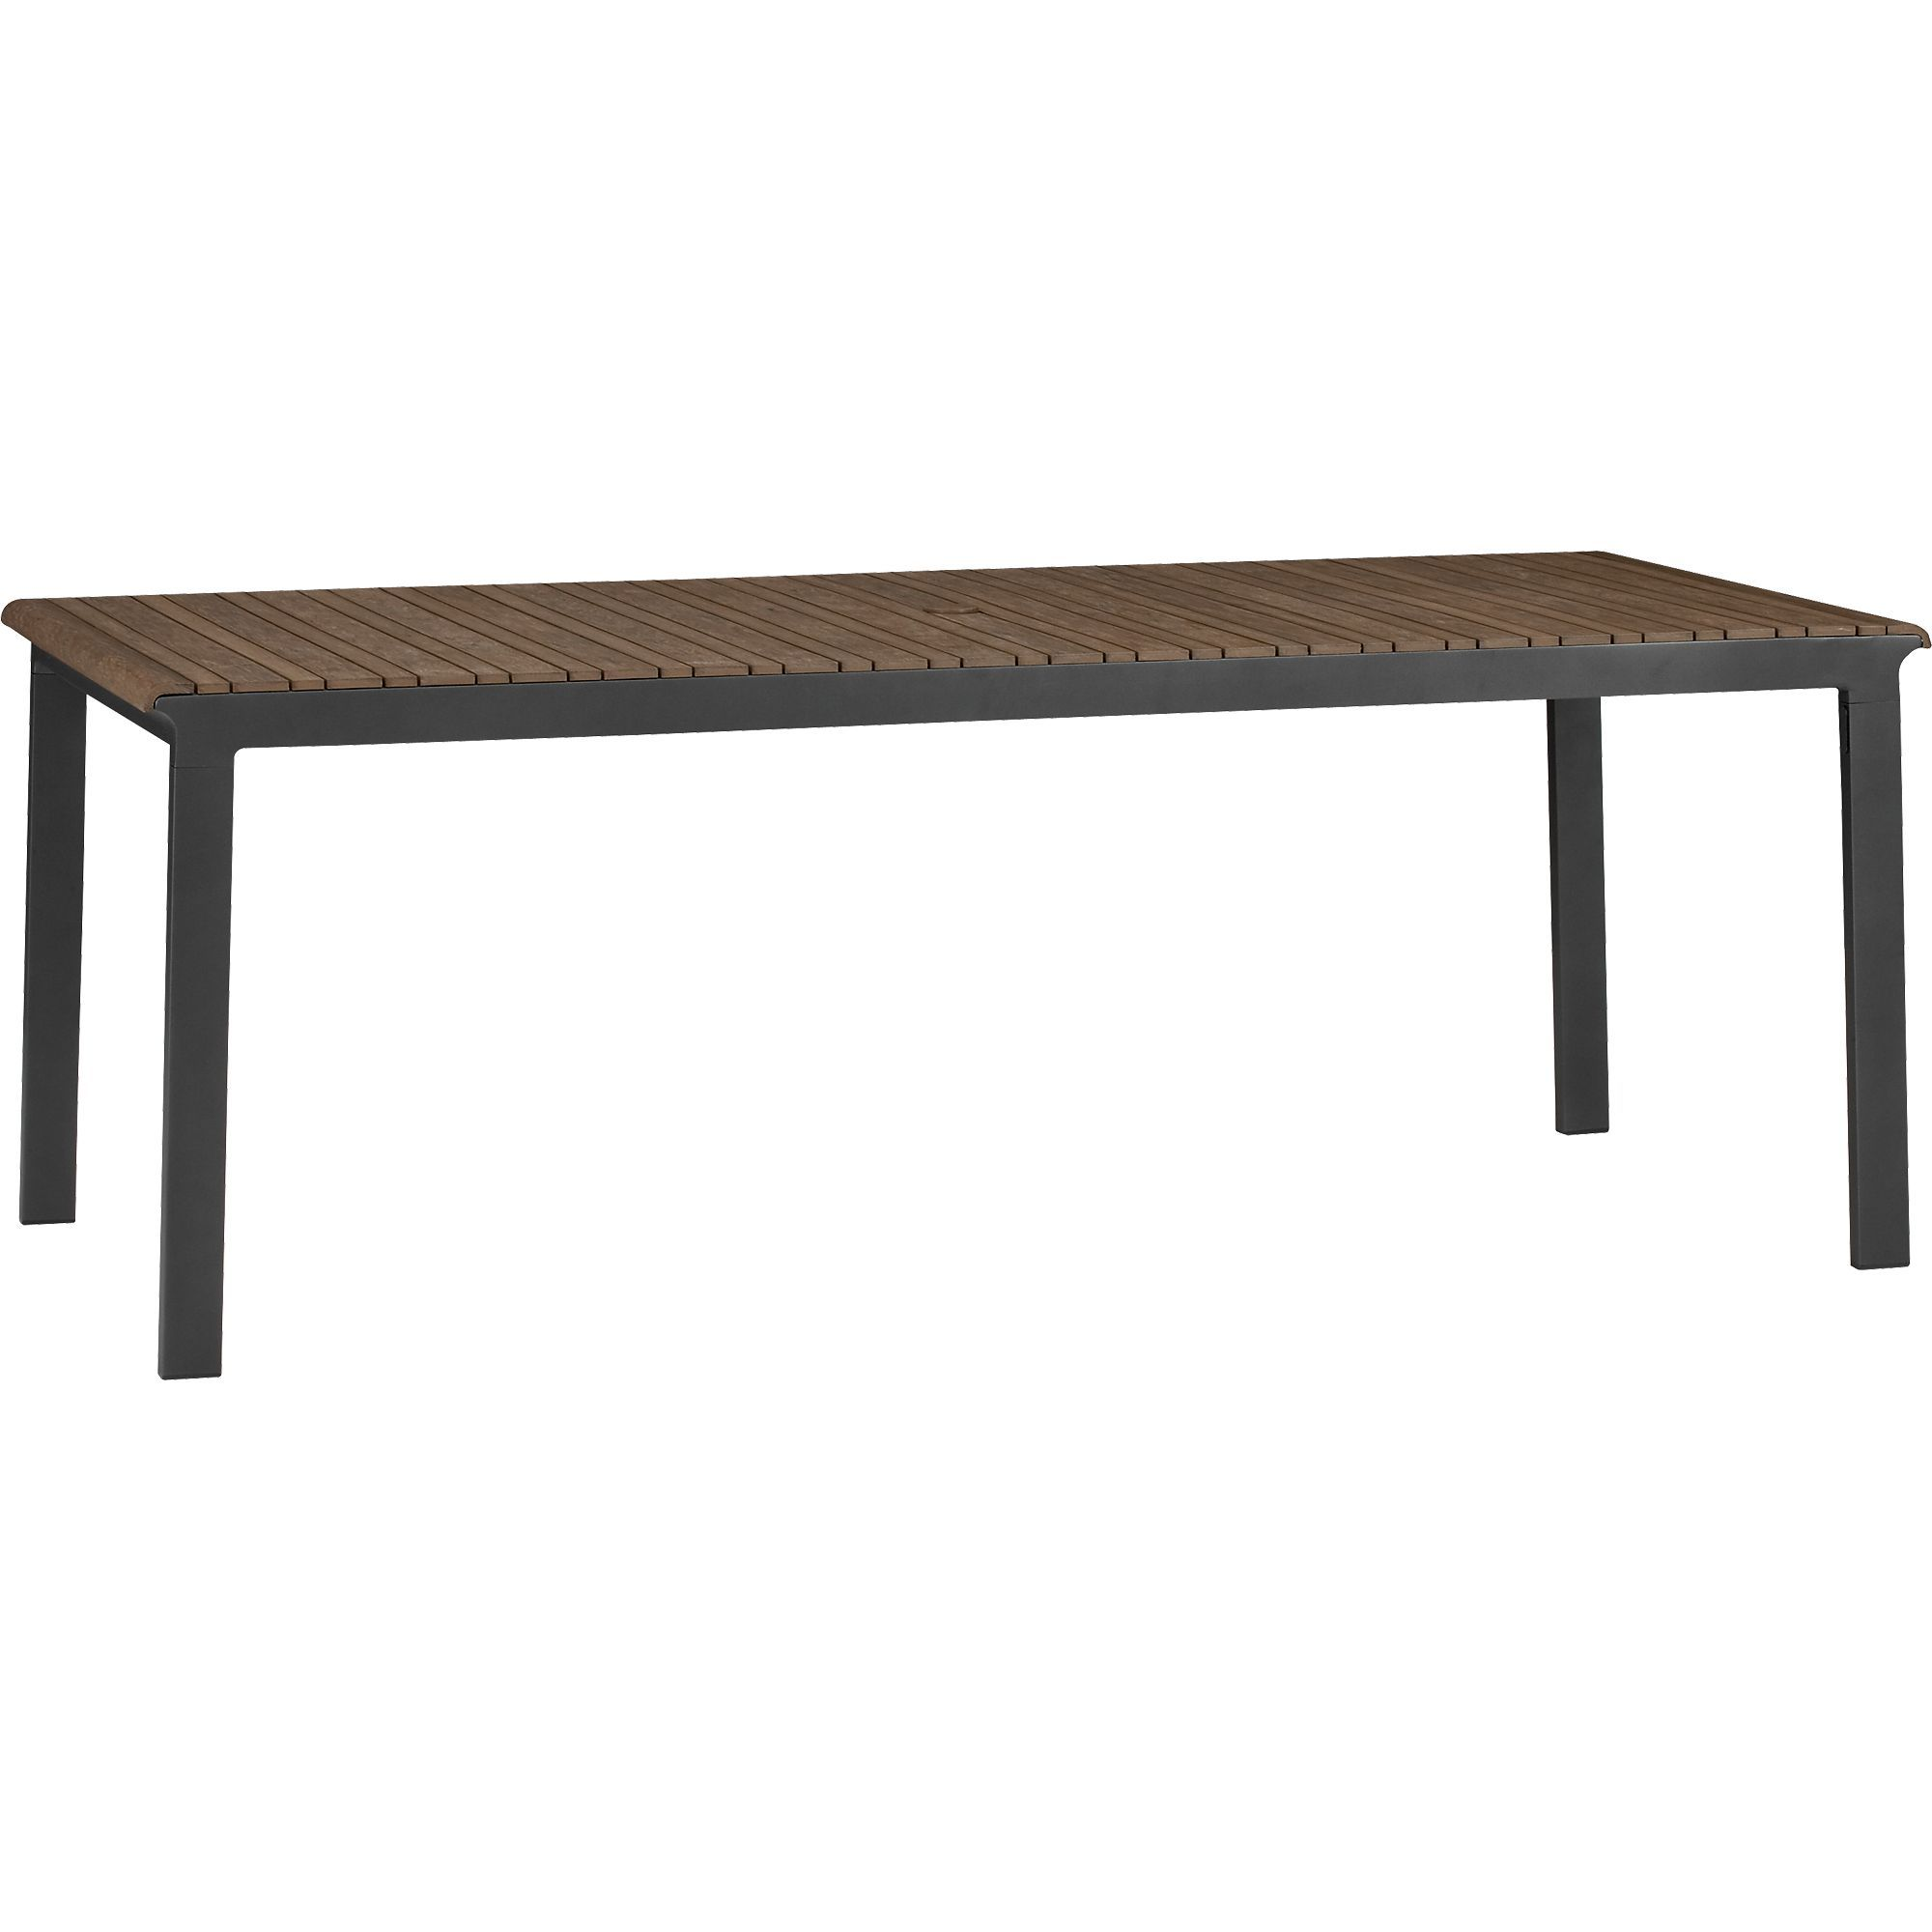 Rocha rectangular dining table in rocha collection crate and barrel